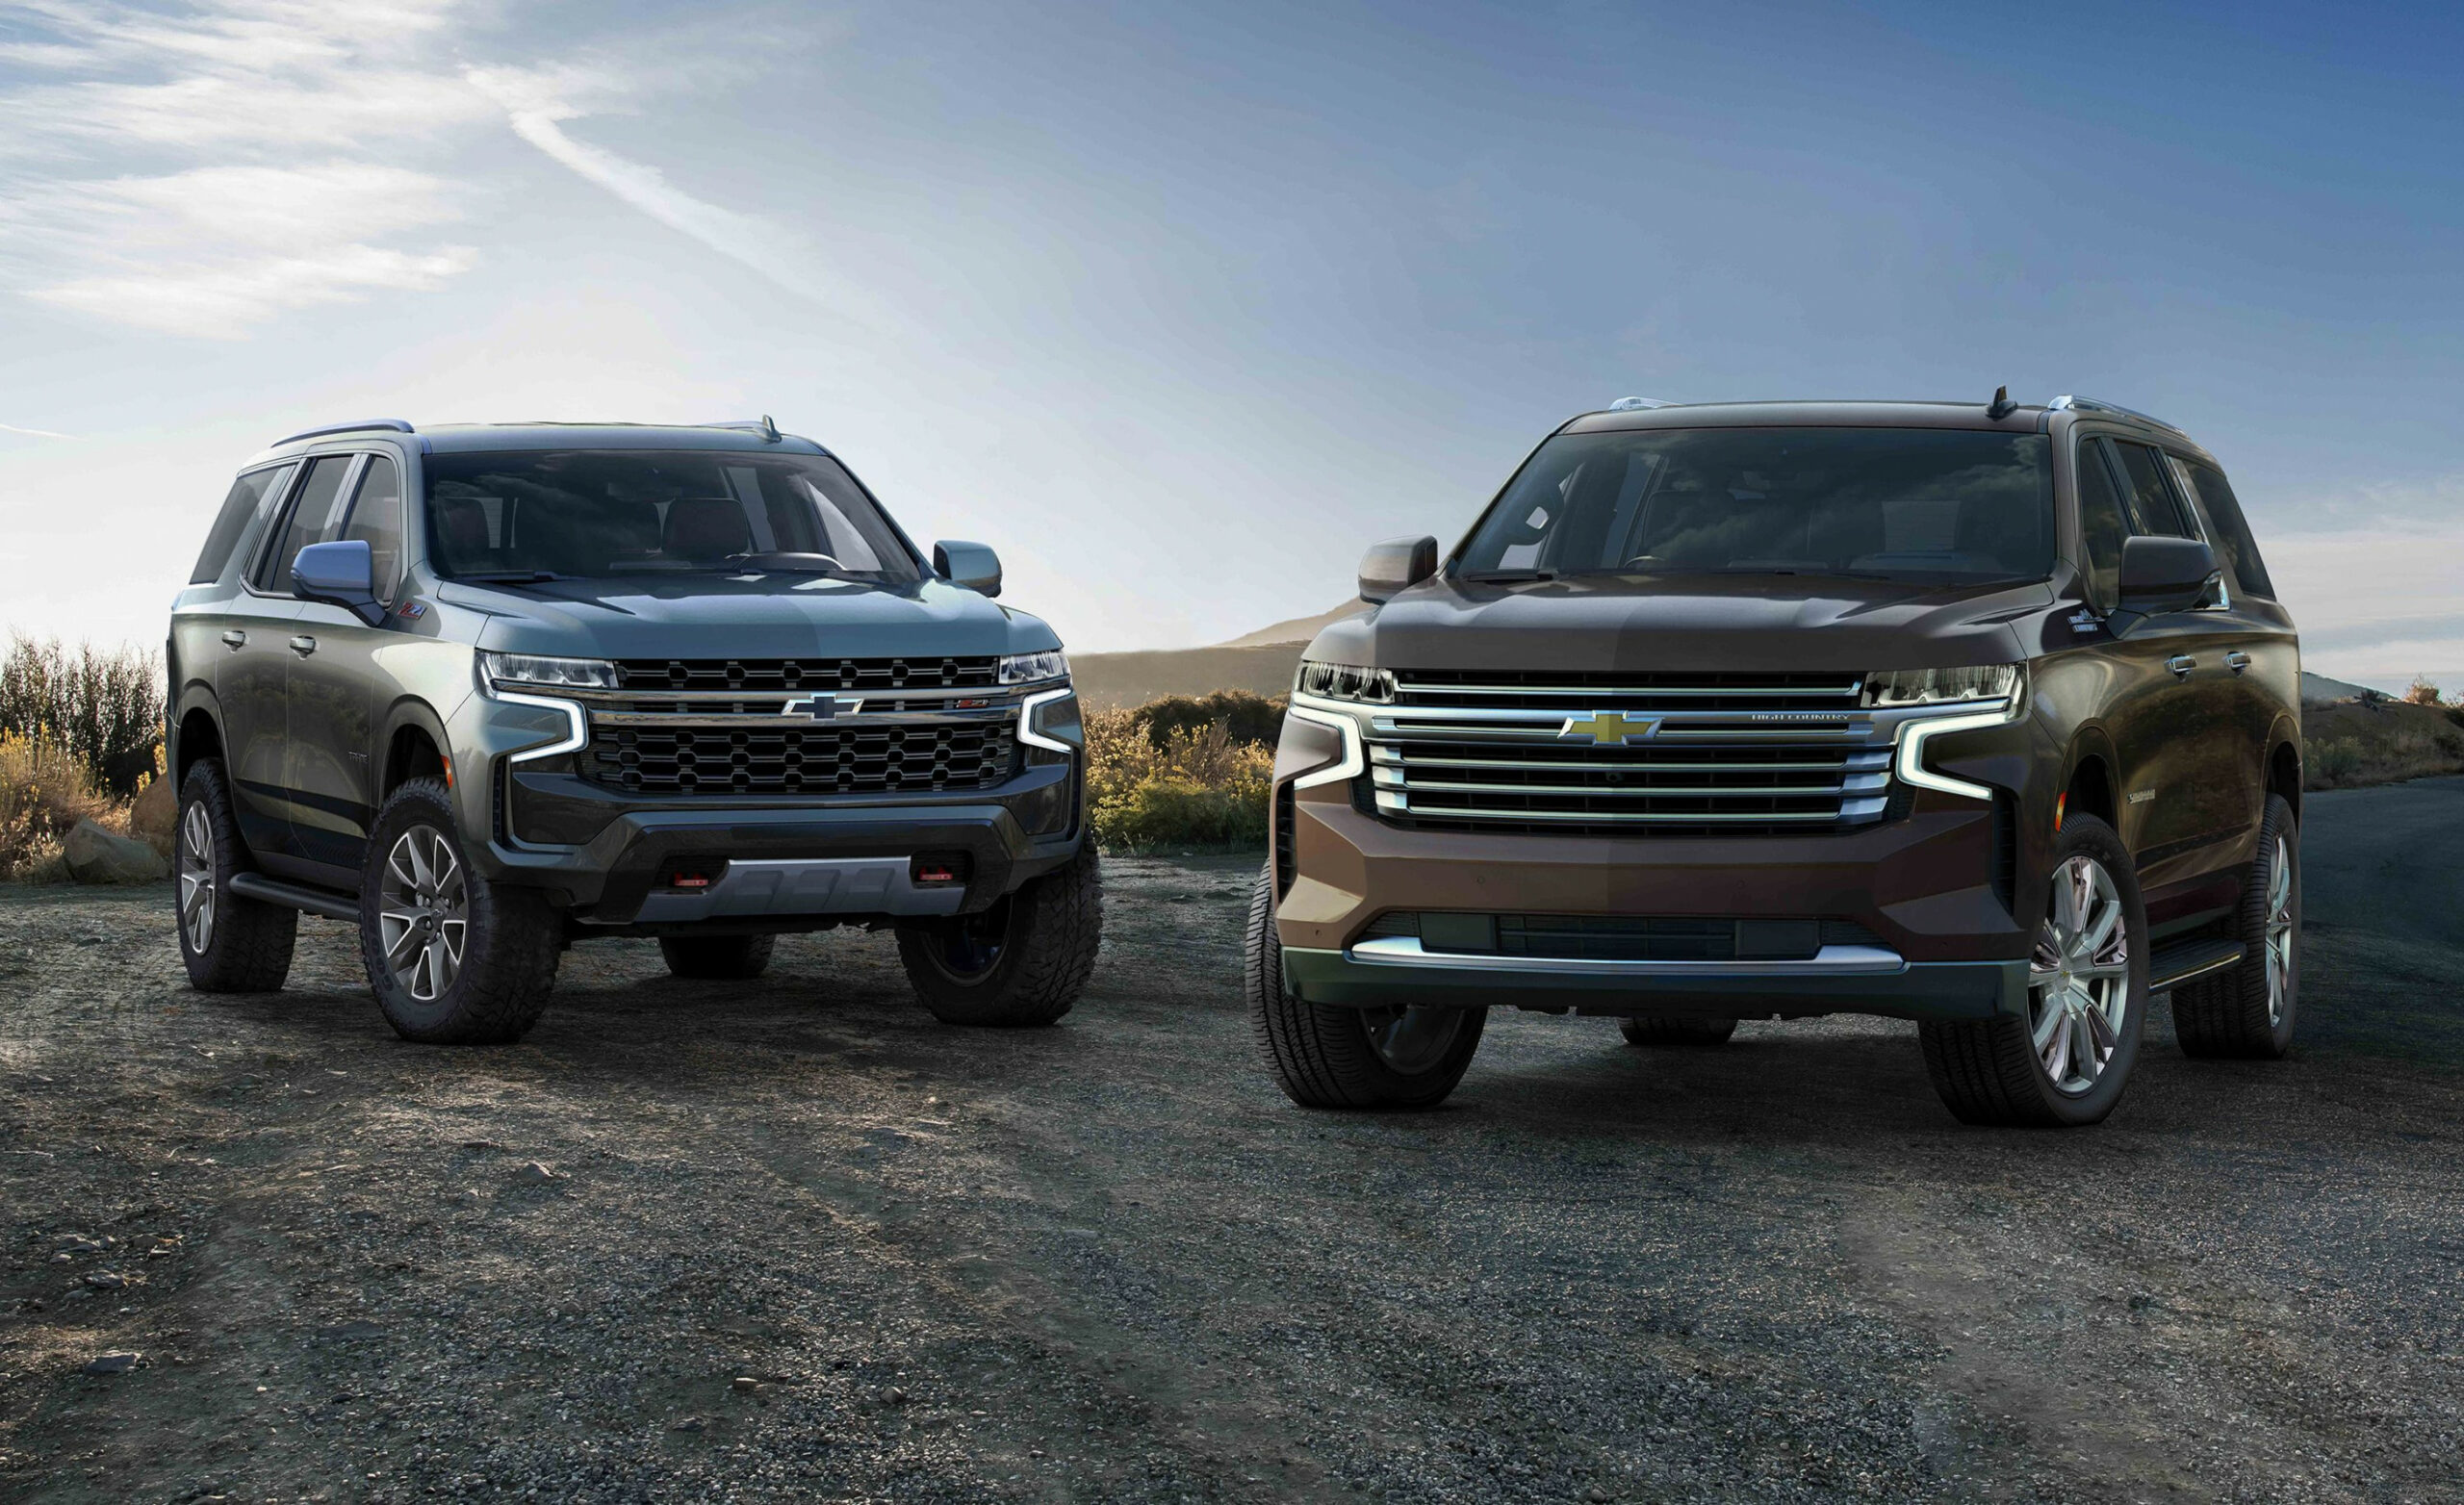 Review When Will The 2022 Chevrolet Suburban Be Released